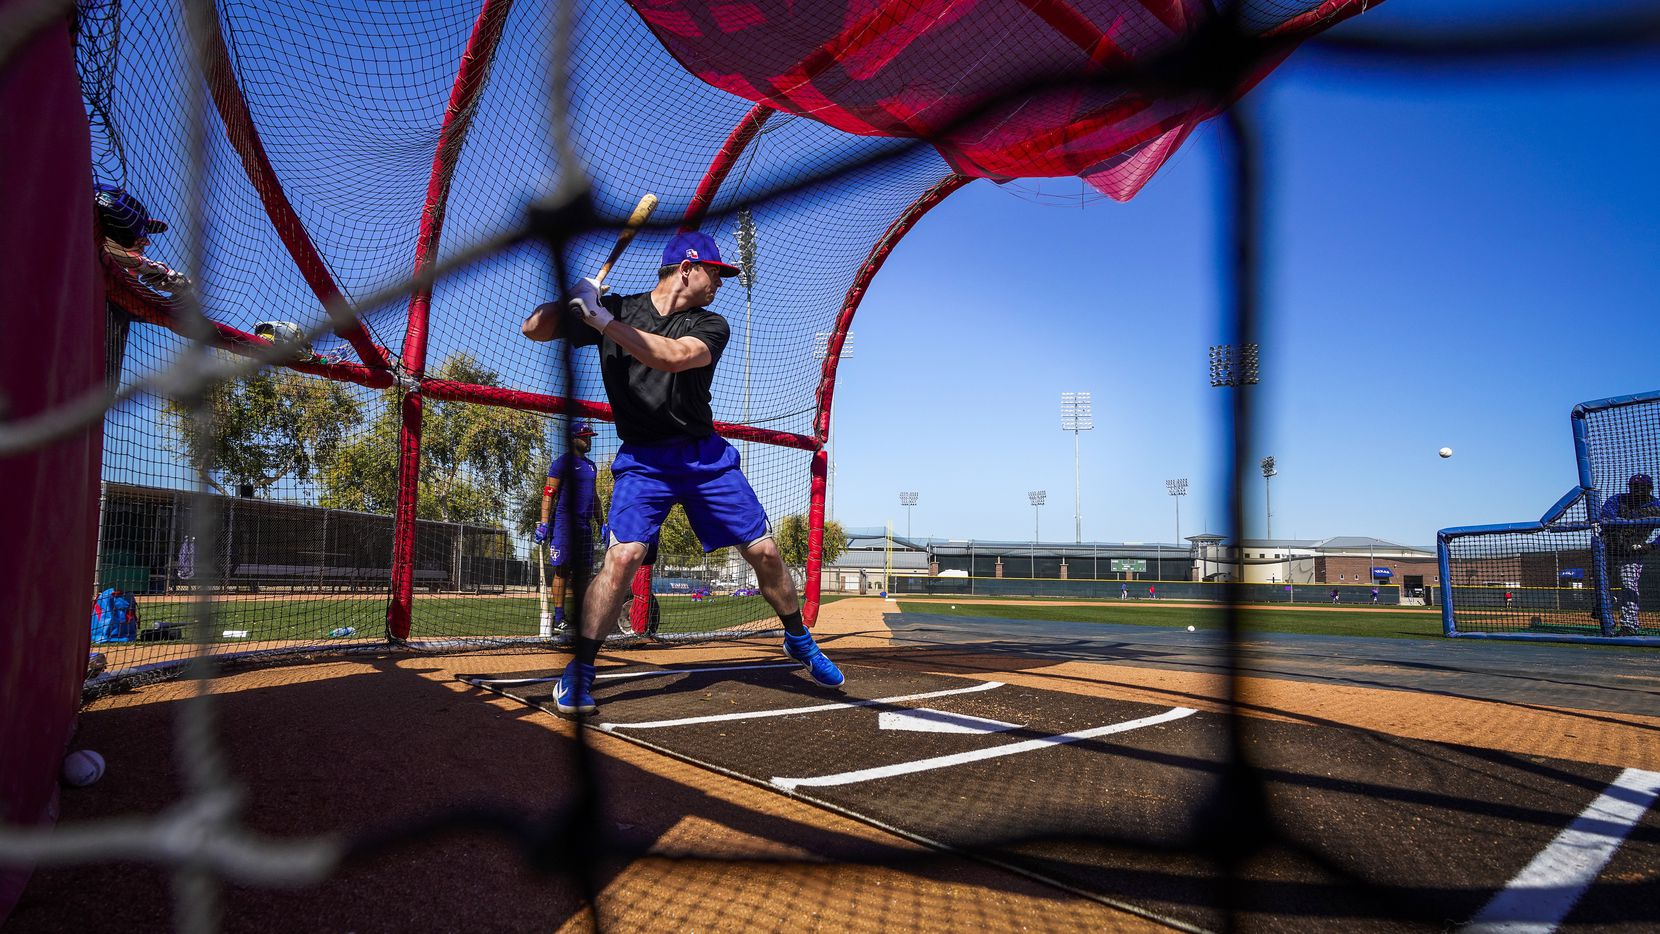 Texas Rangers infielder Nick Solak takes batting practice during a spring training workout at the team's training facility on Friday, Feb. 14, 2020, in Surprise, Ariz.